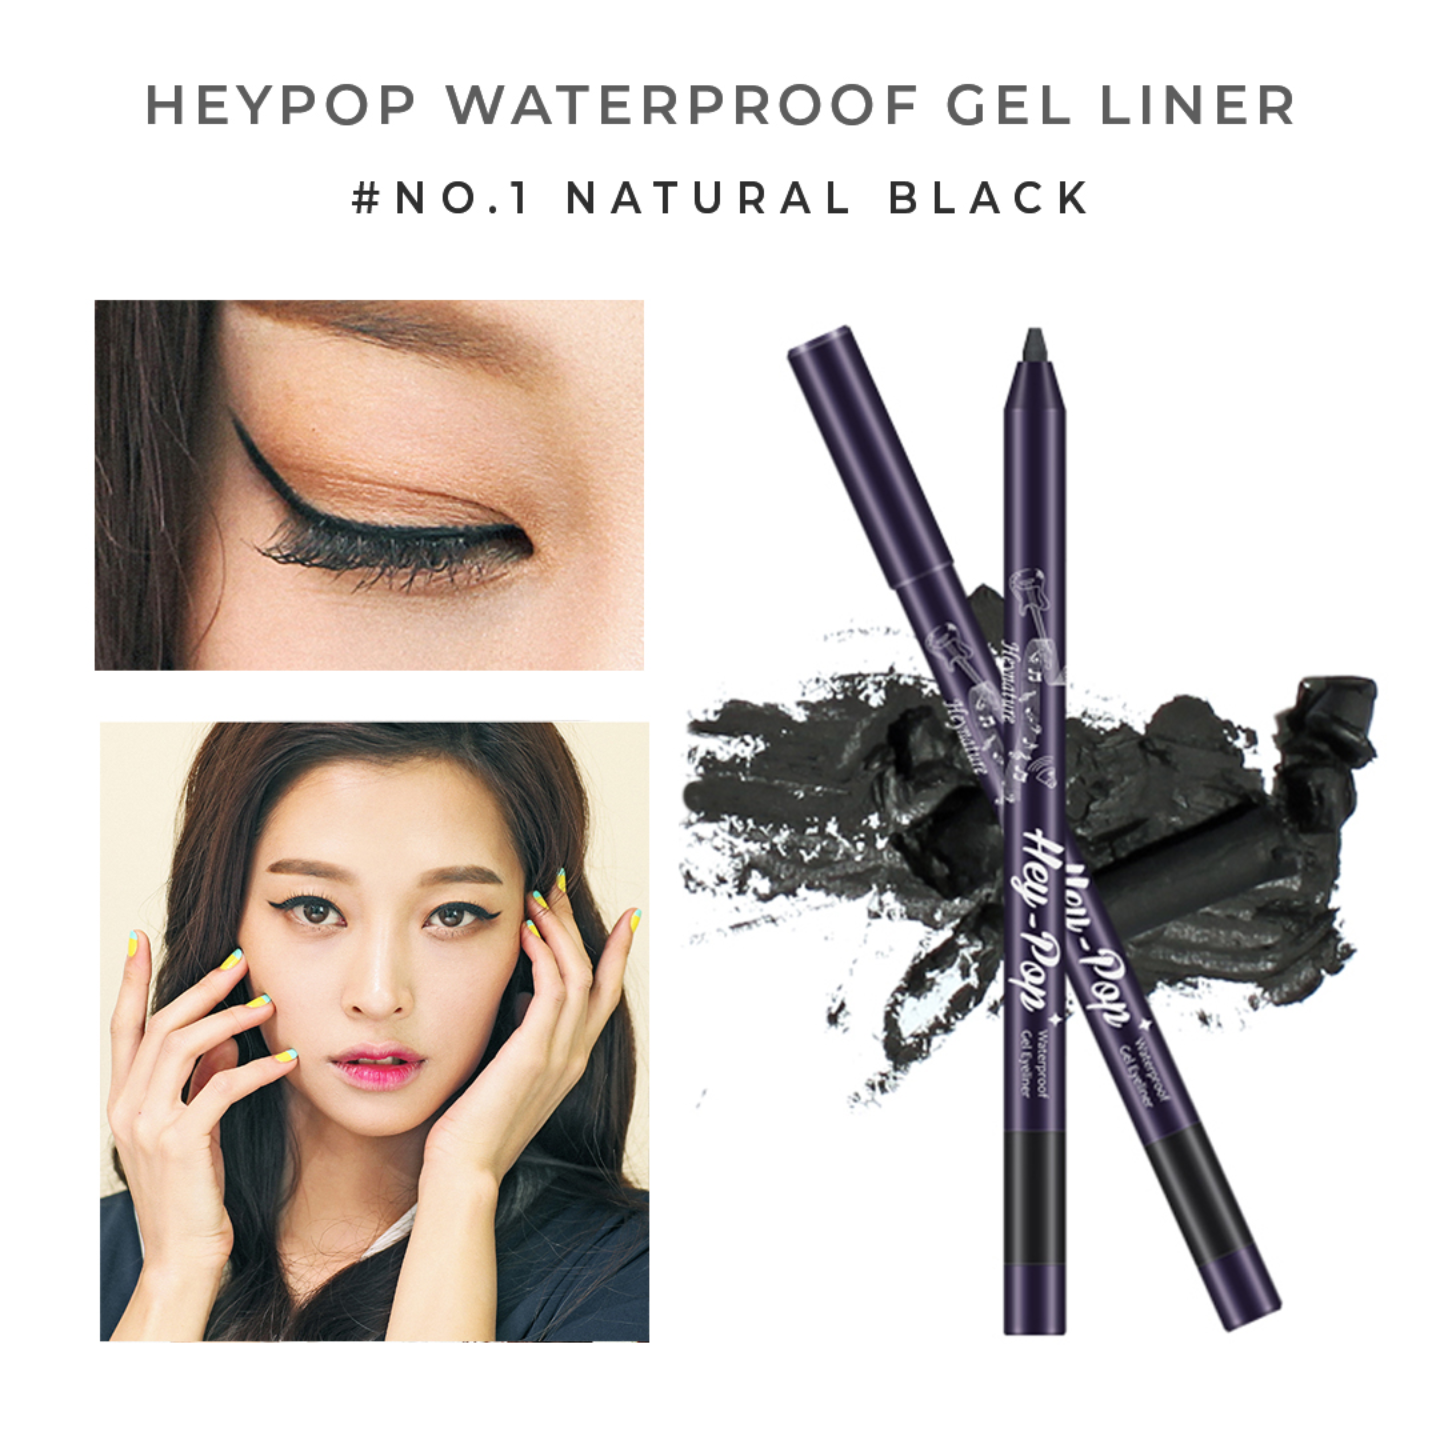 Heynature Hey-Pop Waterproof Gel Eyeliner No.1 Natural Black